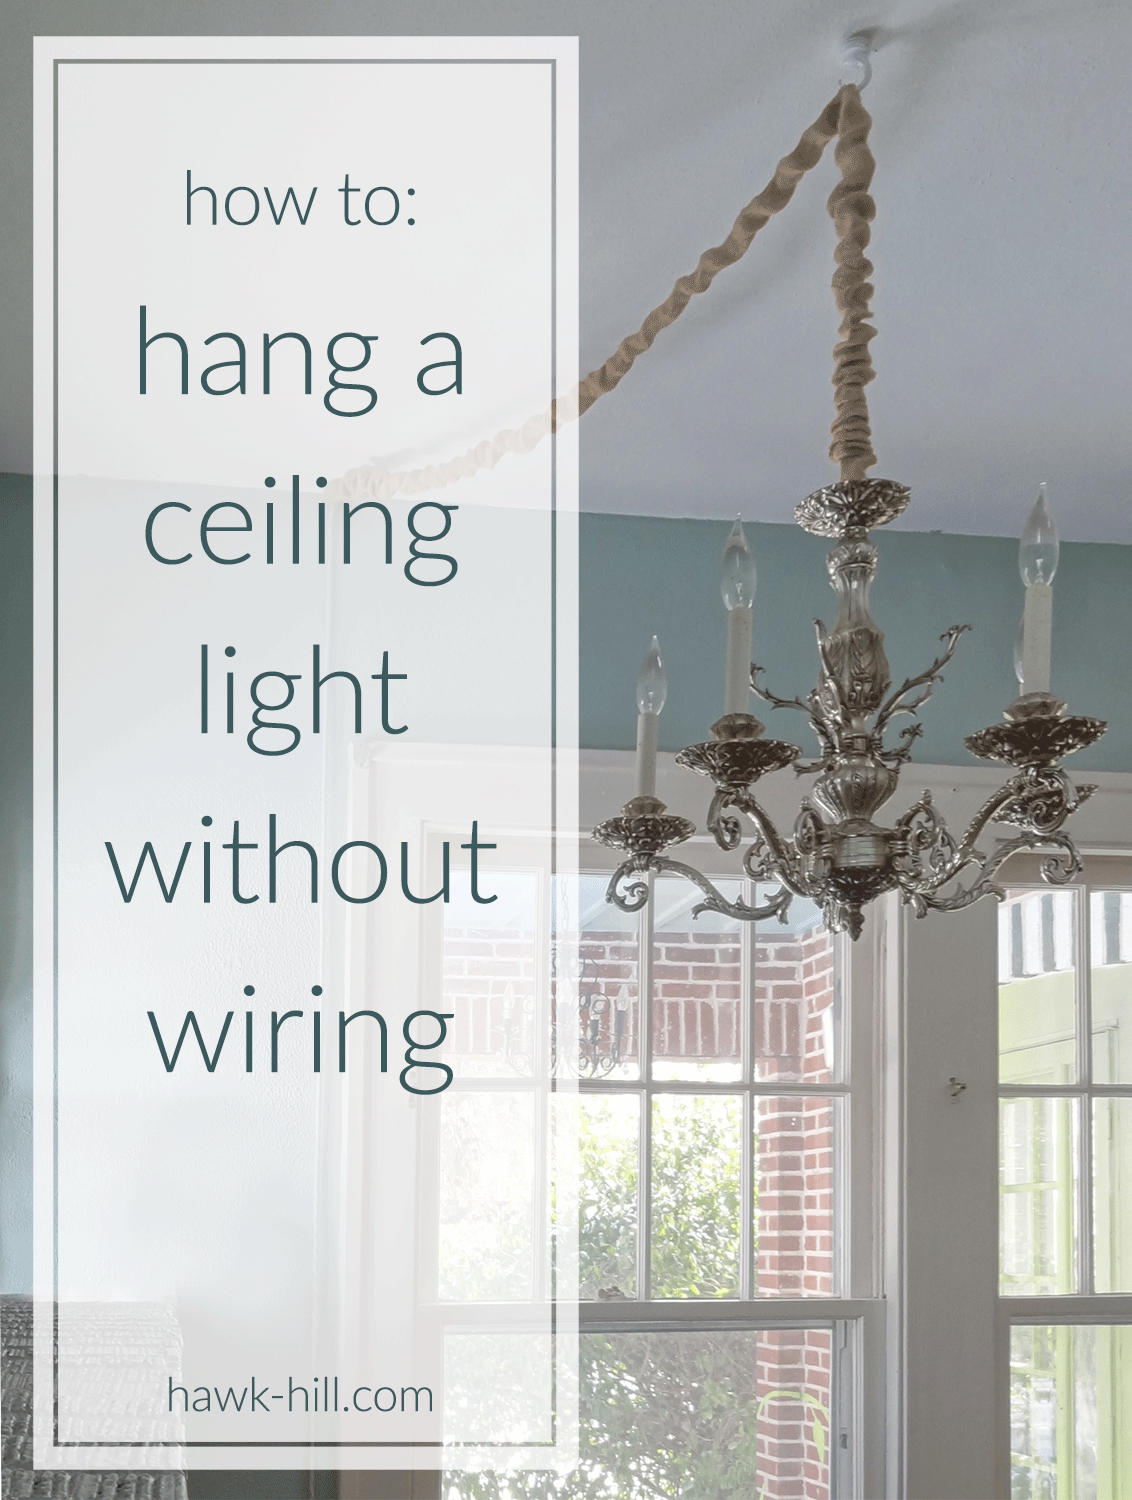 Instructions for hanging a ceiling light without ceiling wiring ...